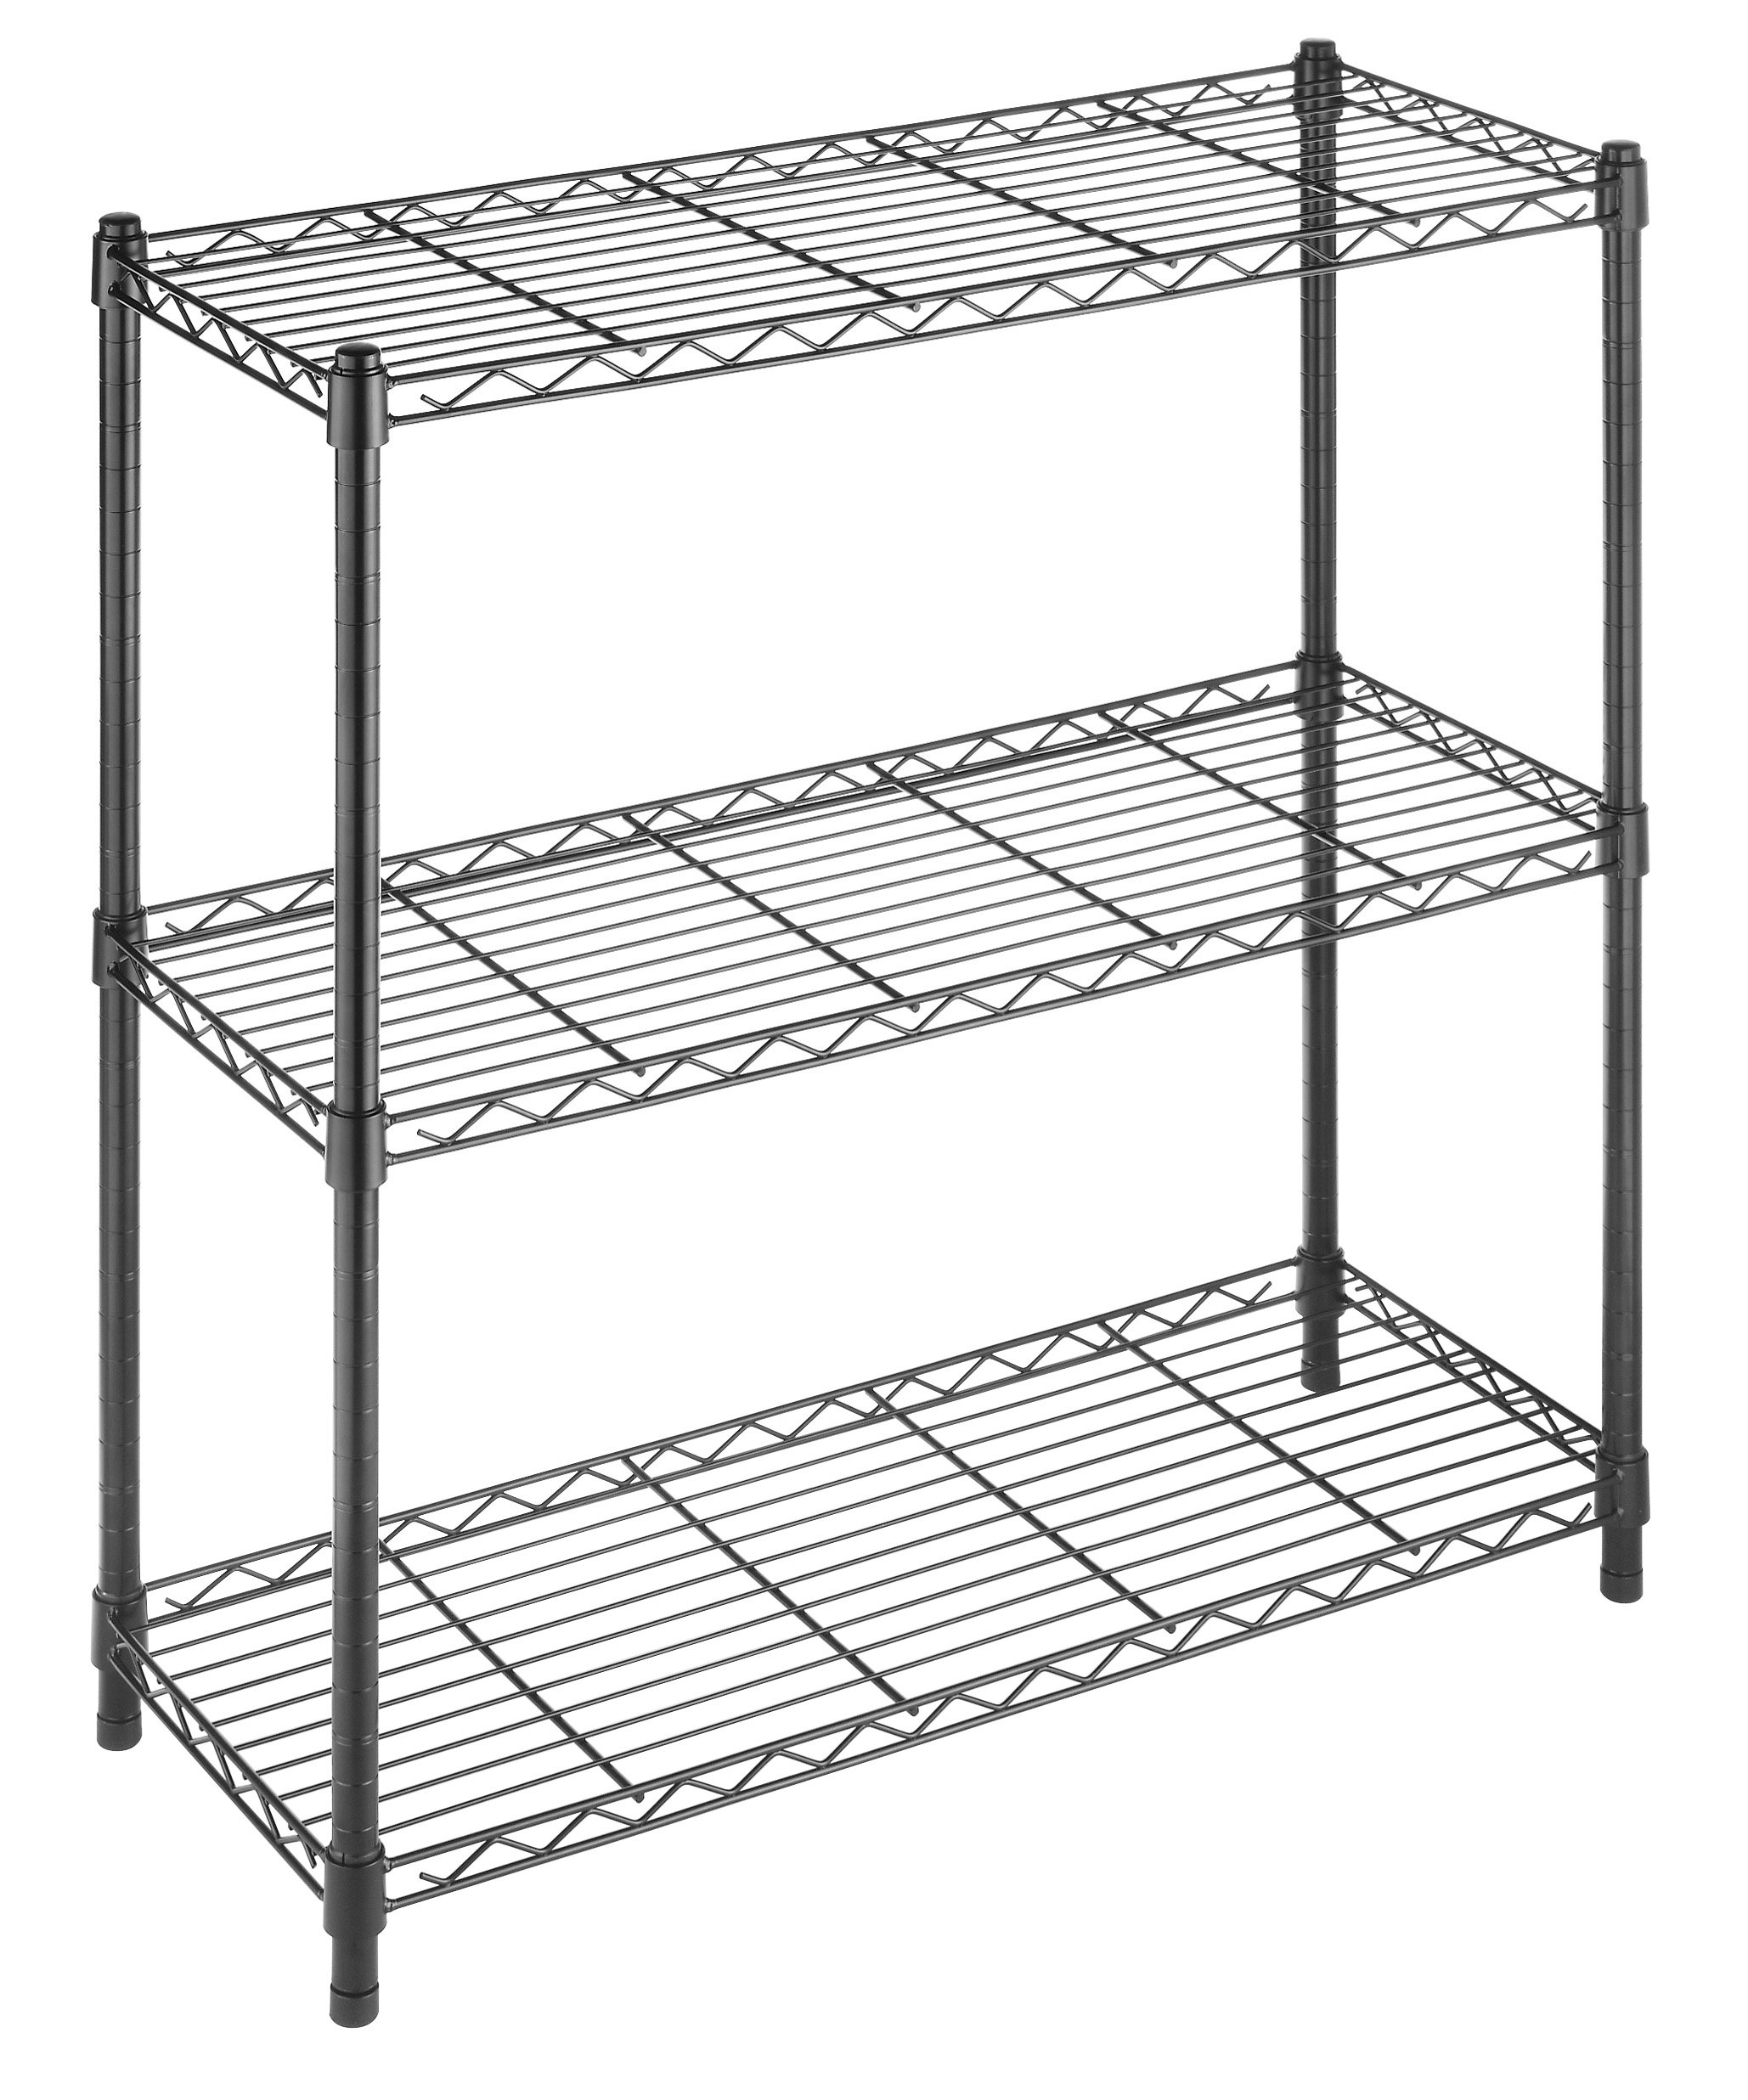 Whitmor Supreme 3 Tier Shelving with Adjustable Shelves and Leveling Feet - Black by Whitmor